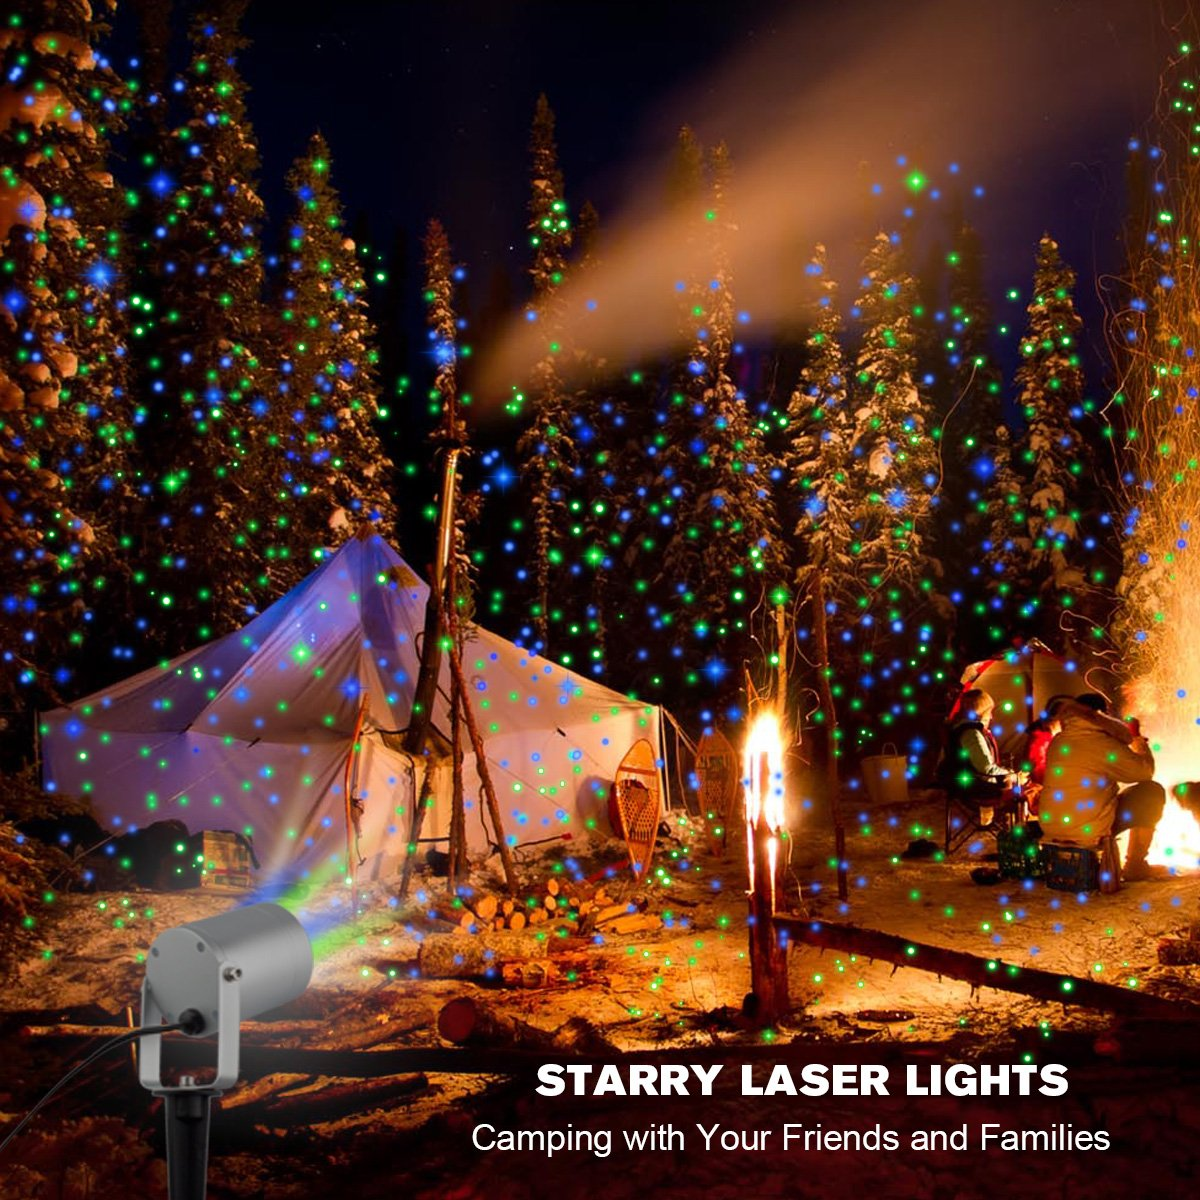 Amazon.com : 2 Color Motion Laser Light Star Projector with RF ...